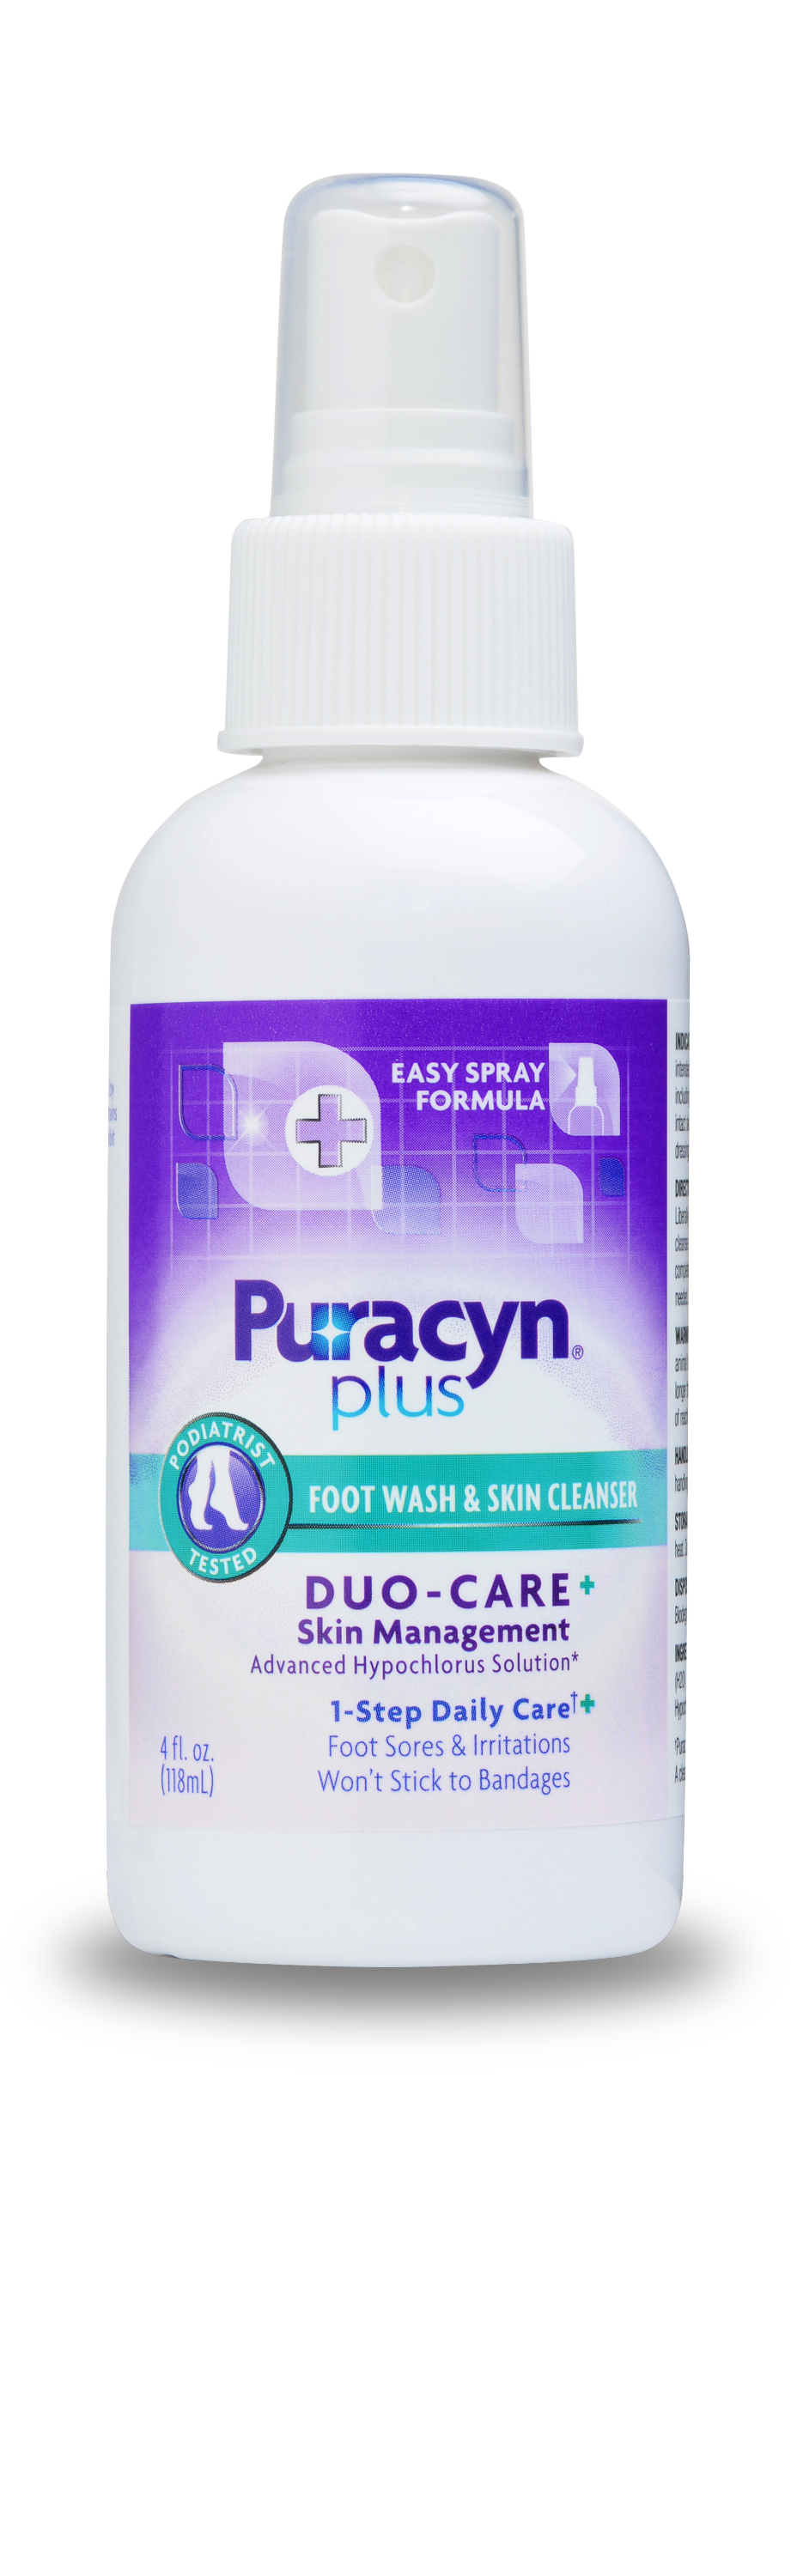 Project Eve Moms Must Haves for a Family First Aid Kit #TeamPuracynPlus